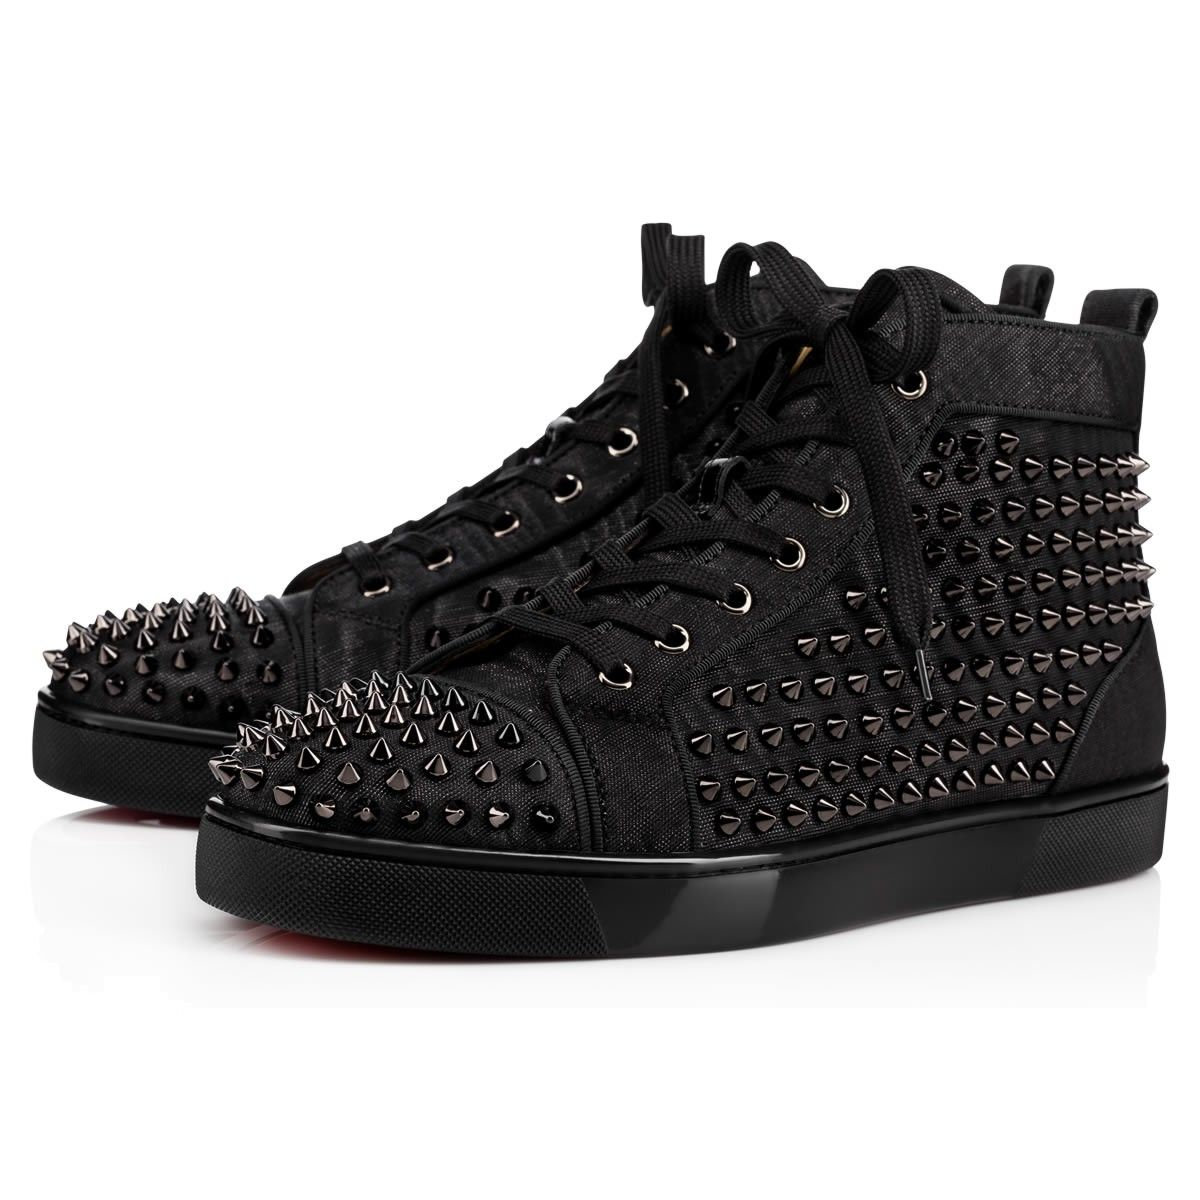 76b2eb0863f1 CHRISTIAN LOUBOUTIN Louis Spikes Orlato Men S Flat Black Gunmetal Leather -  Men Shoes - Christian Louboutin.  christianlouboutin  shoes